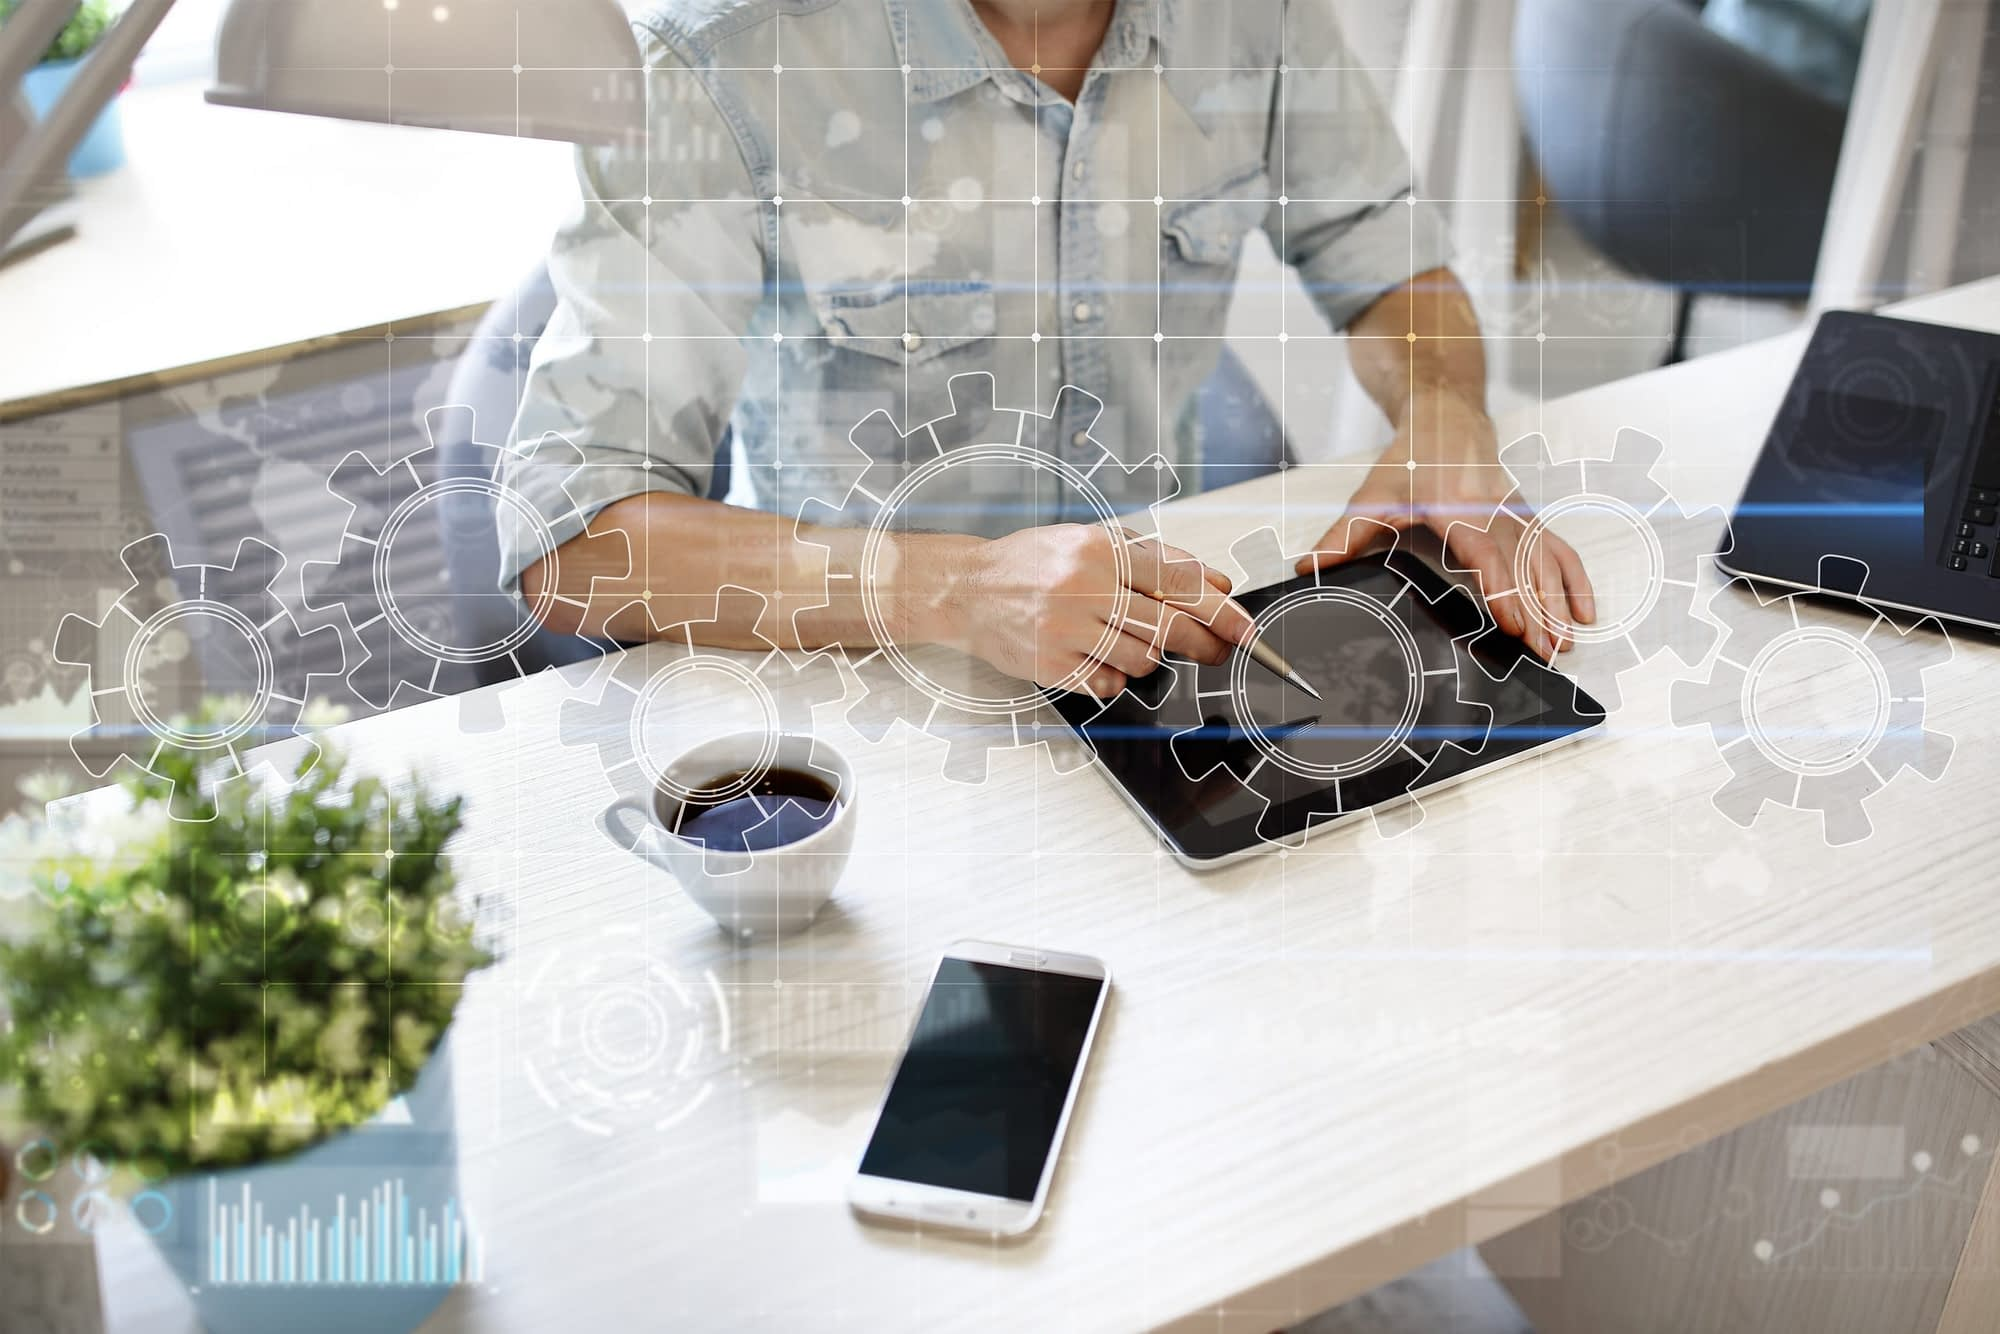 Small business operations manager sitting at desk on tablet with a cog and gear image overlay.